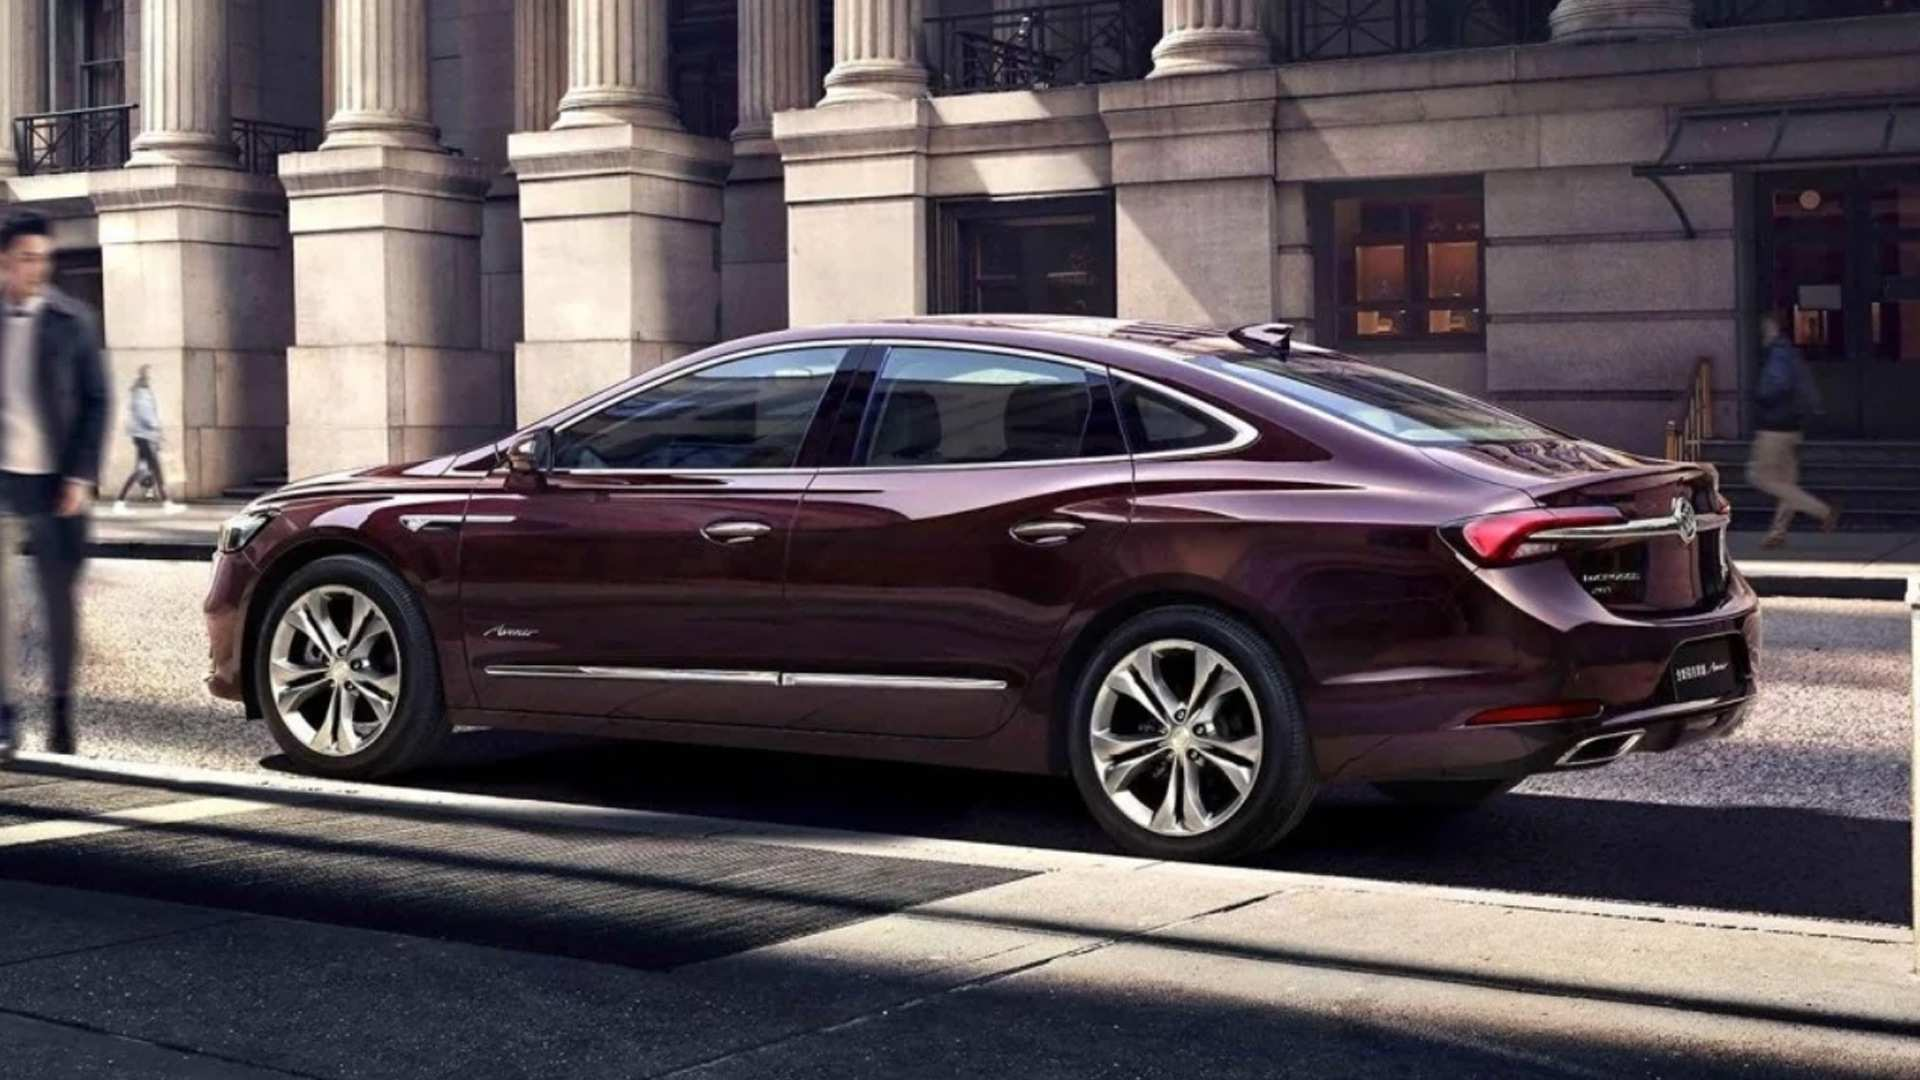 32 A Will There Be A 2020 Buick Lacrosse Spy Shoot